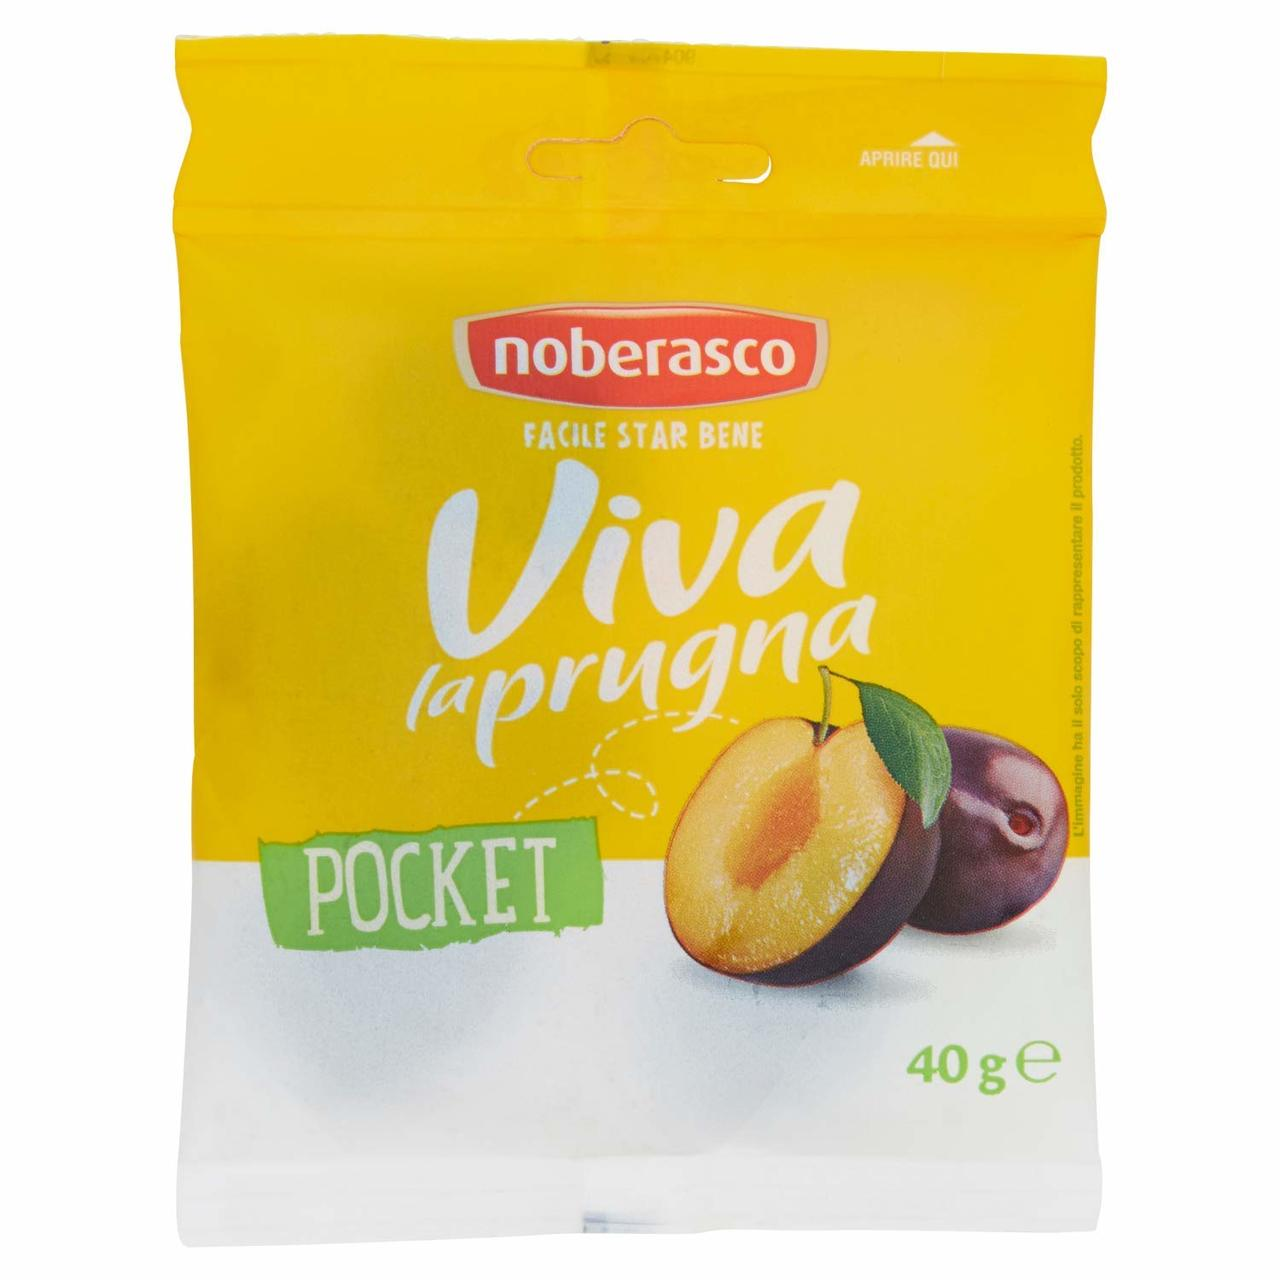 Noberasco Viva la Prugna - Prunes Pocket (40g) (NEW)